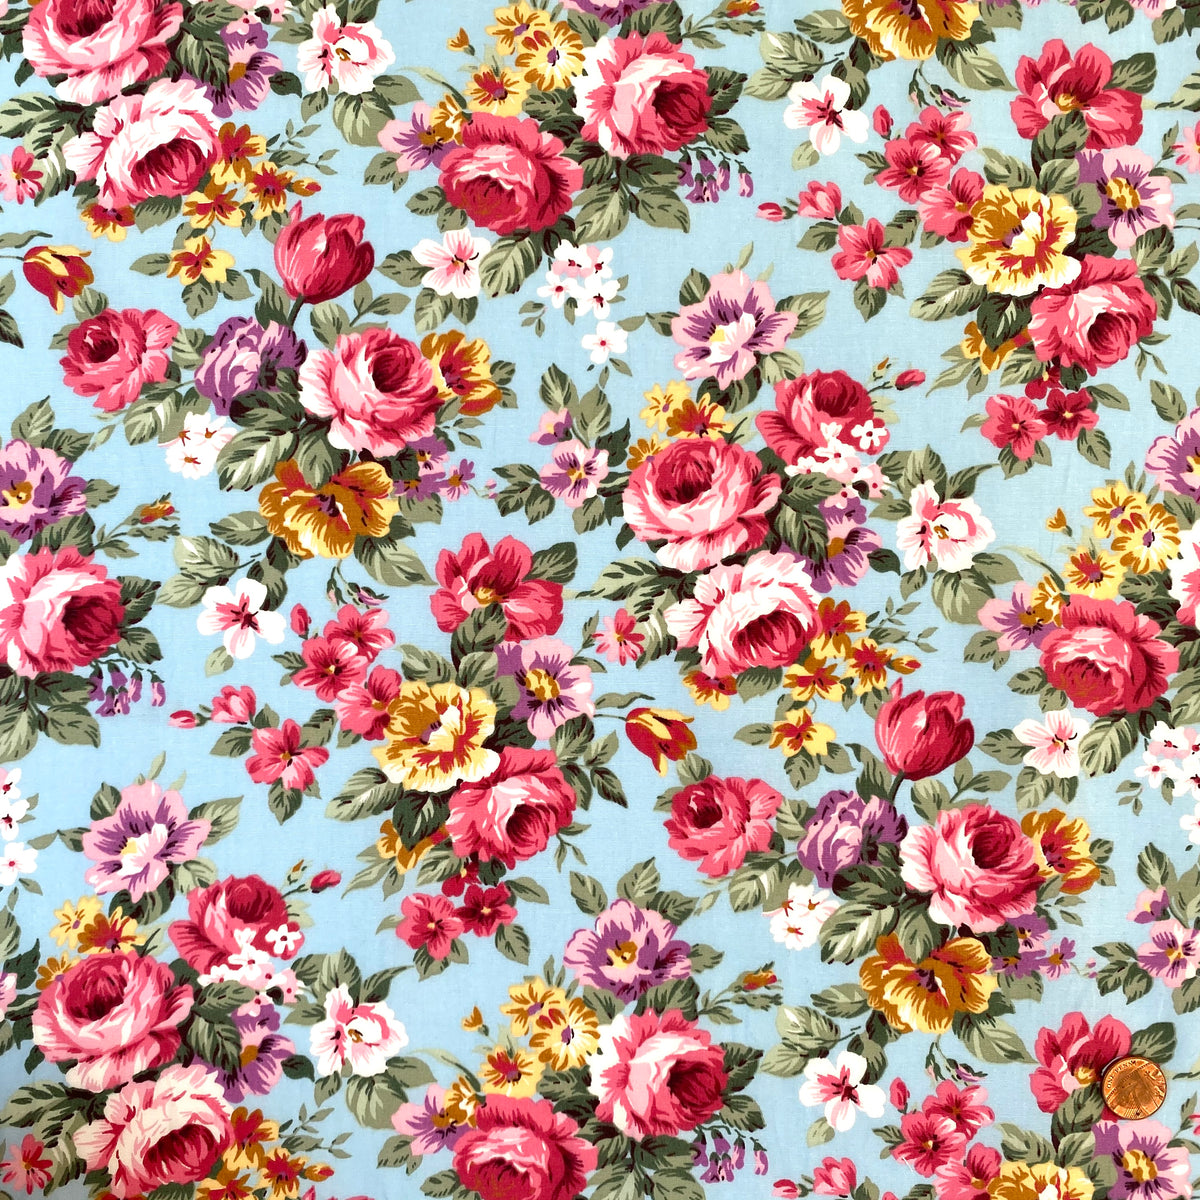 Sky & Pink Victoria Rose, Cotton Poplin Fabric per half metre, 112 cm wide